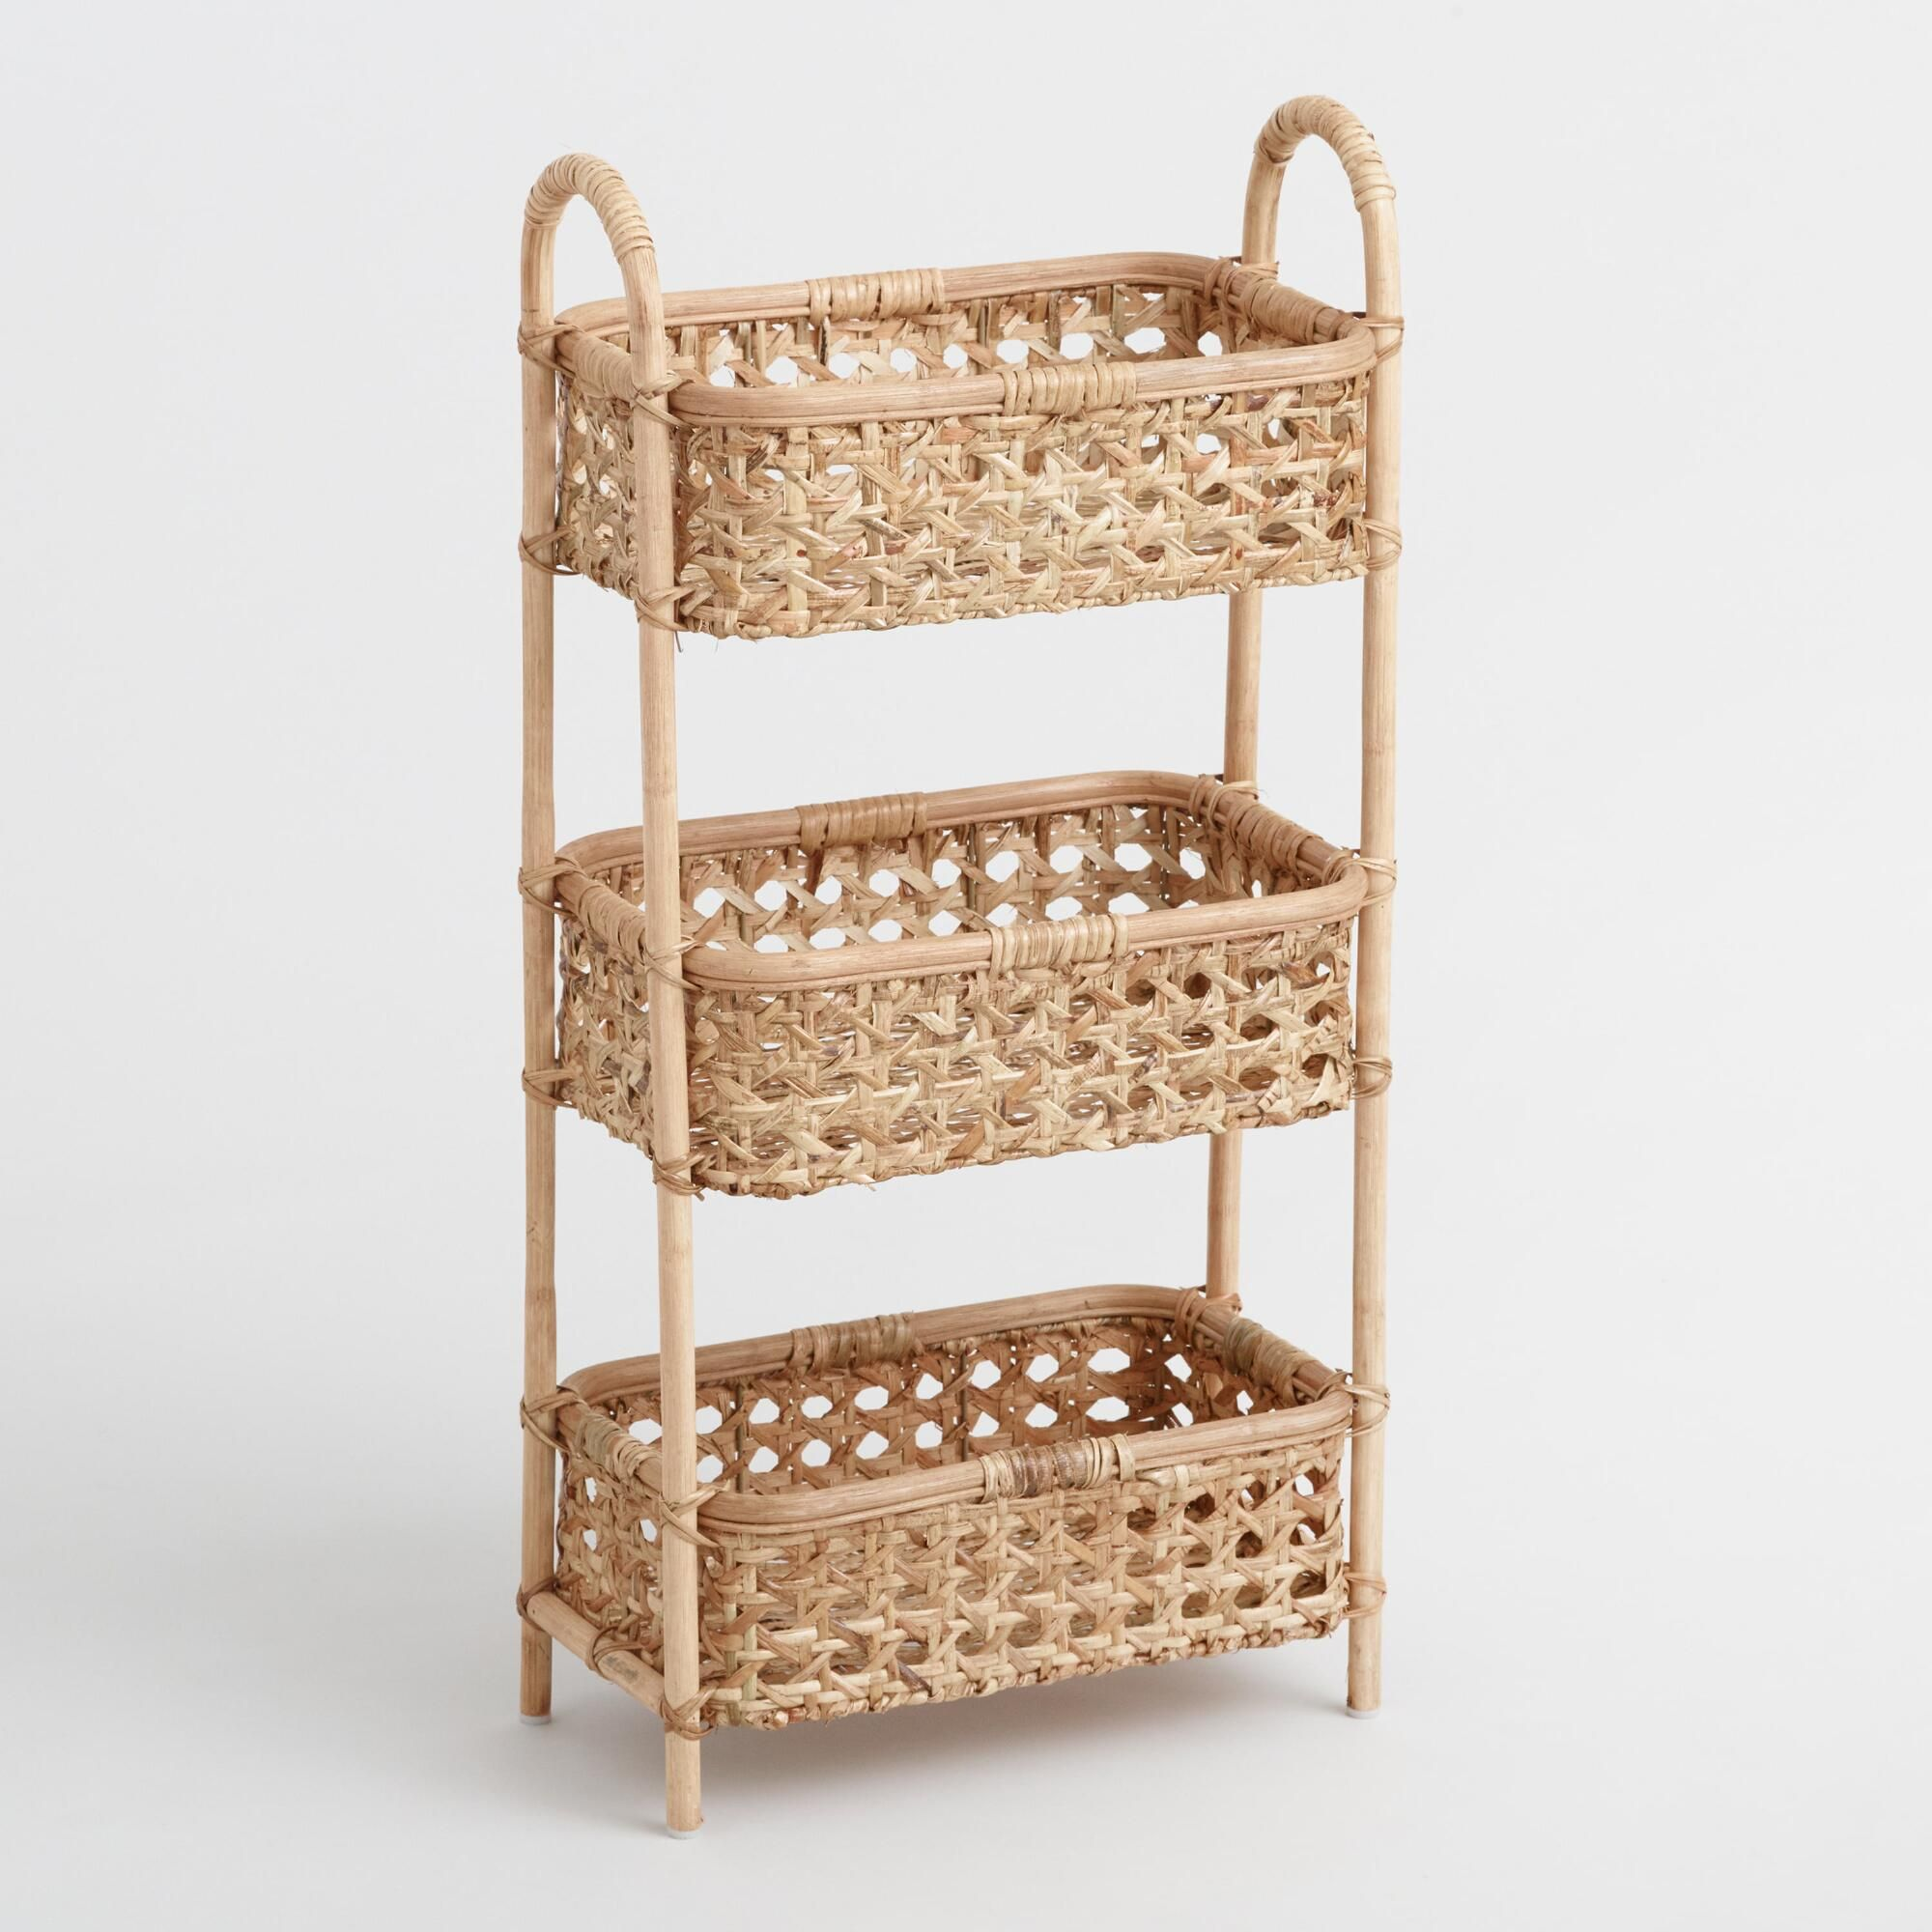 Automatic Bubble Machine on Amazon + World Market Natural Rattan Cane 3 Tier Farrah Storage Tower